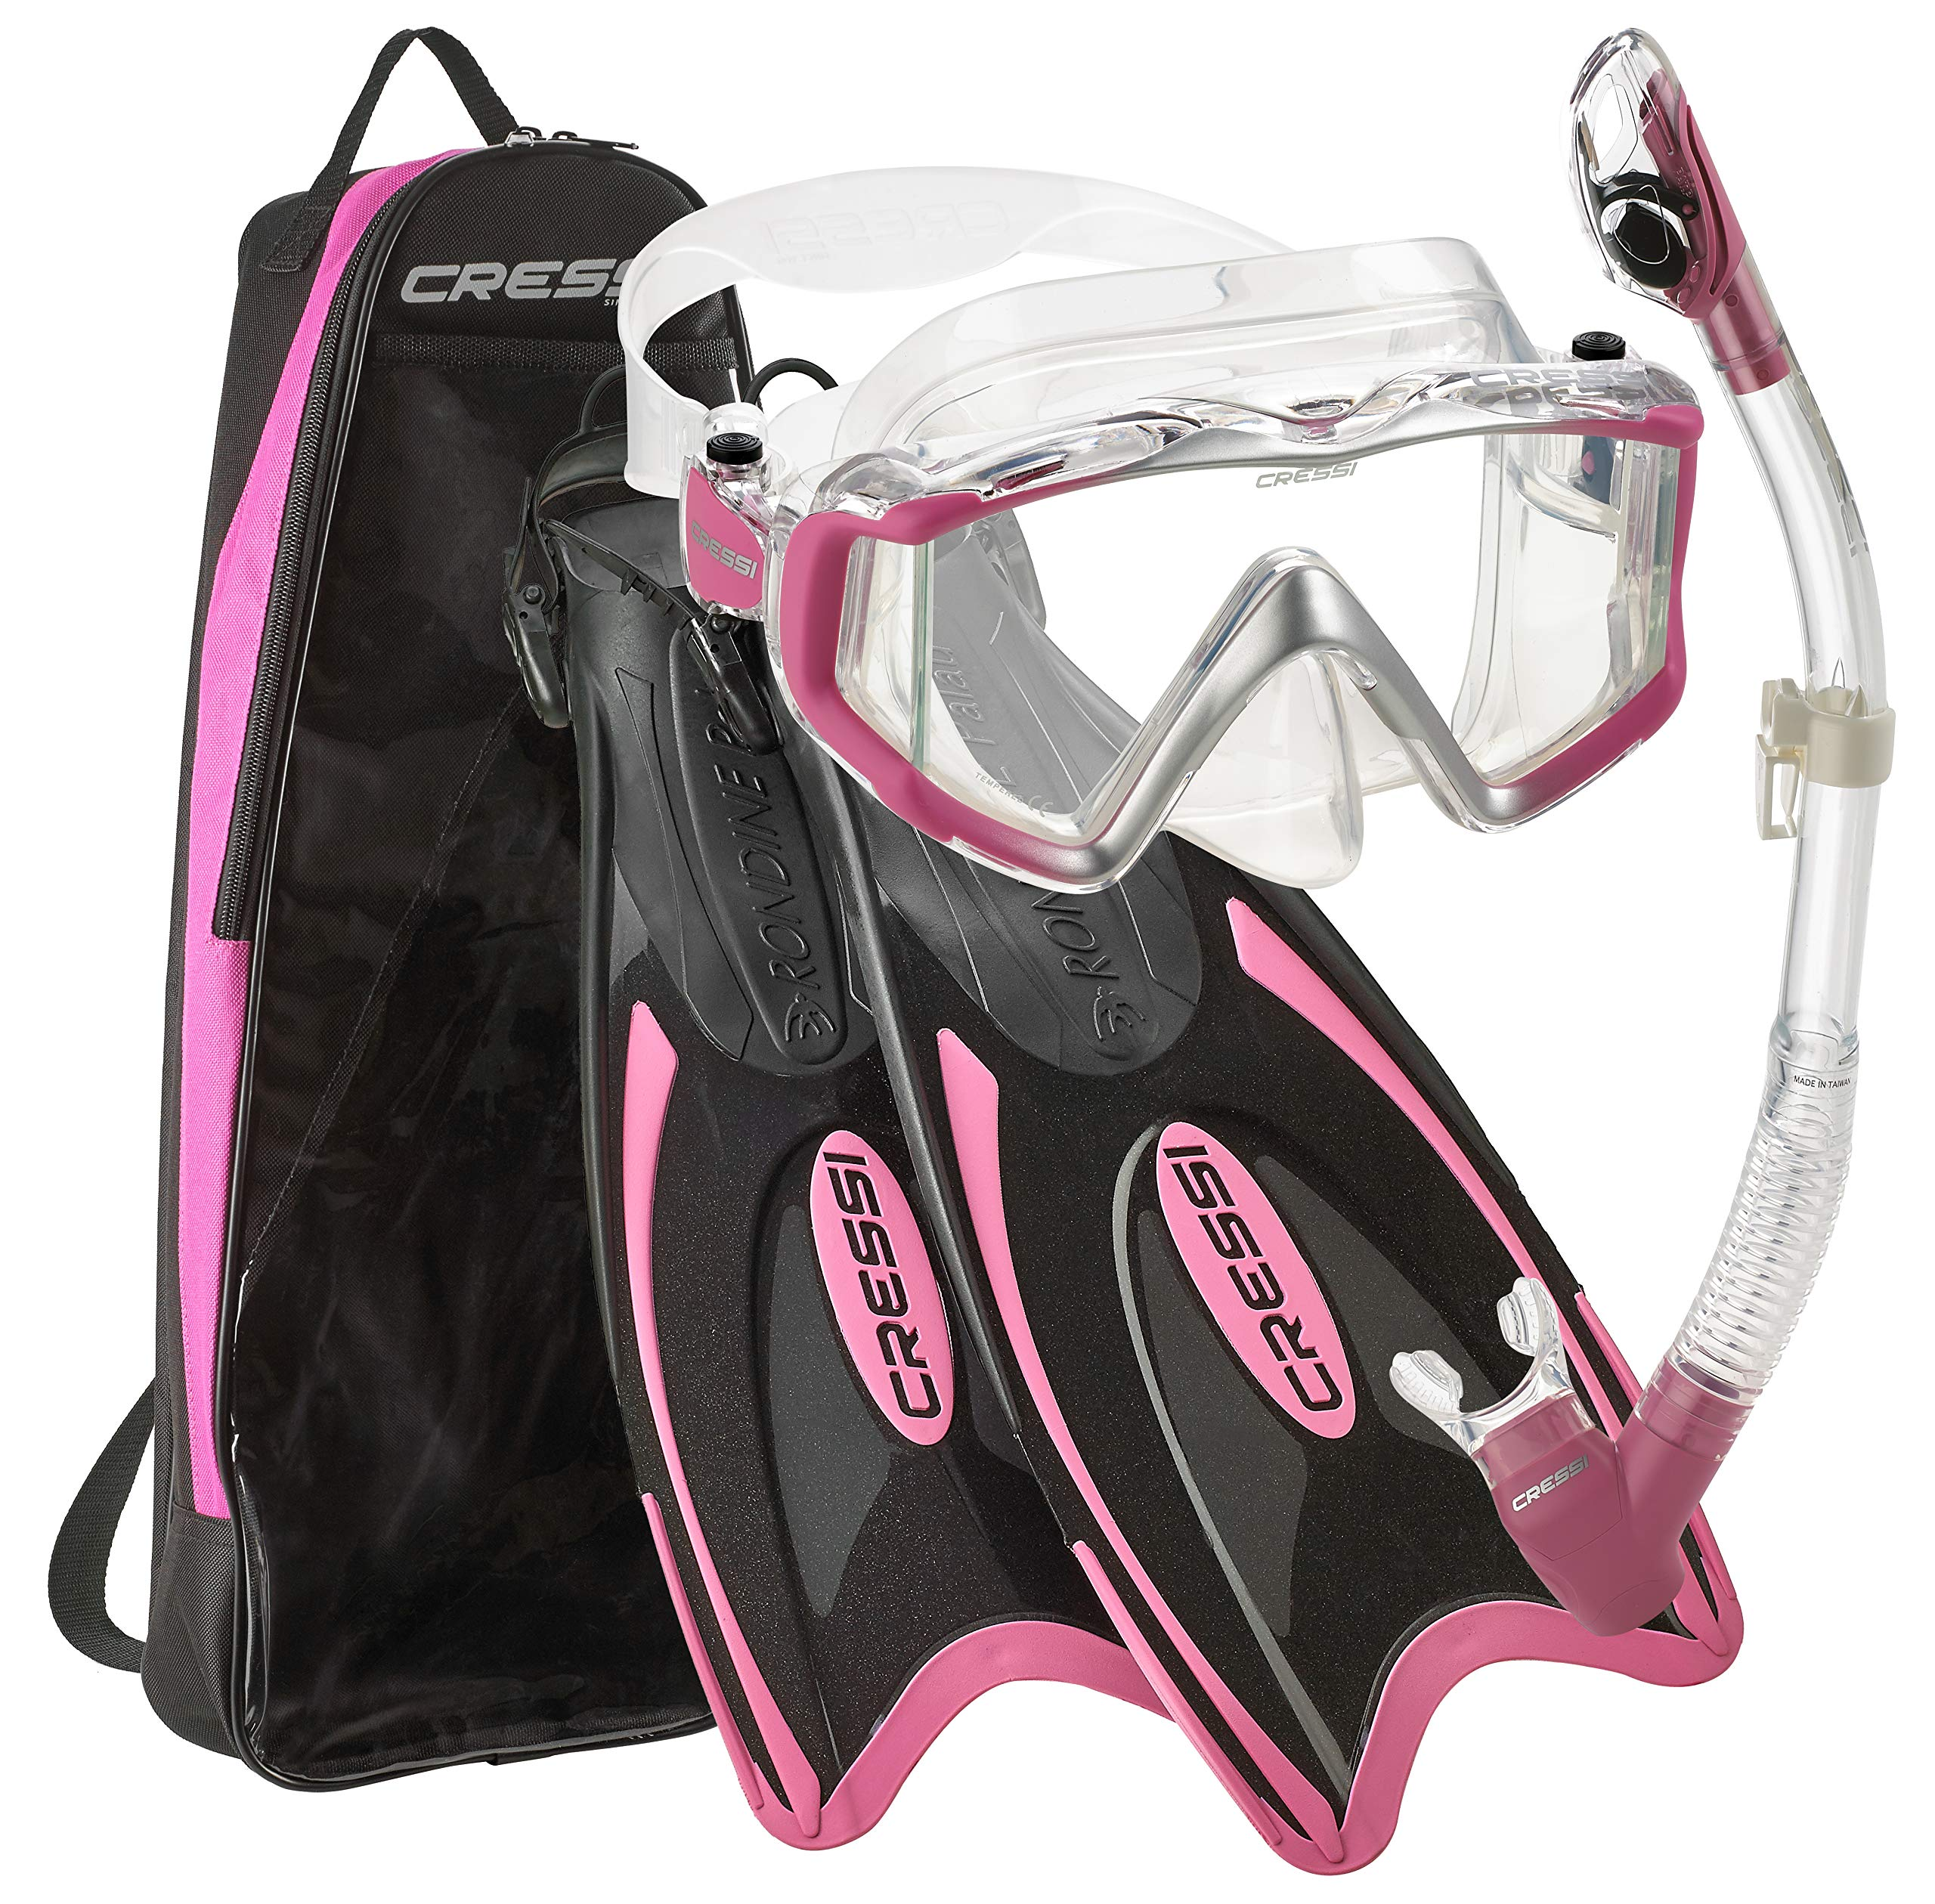 Cressi Palau Traveling Premium Snorkel Set, Panoramic Wide View Adult Diving Snorkeling Mask, Desert Dry Snorkel, Adjustable Fins, Travel Gear Bag - Metallic Pink - Small/Medium by Cressi